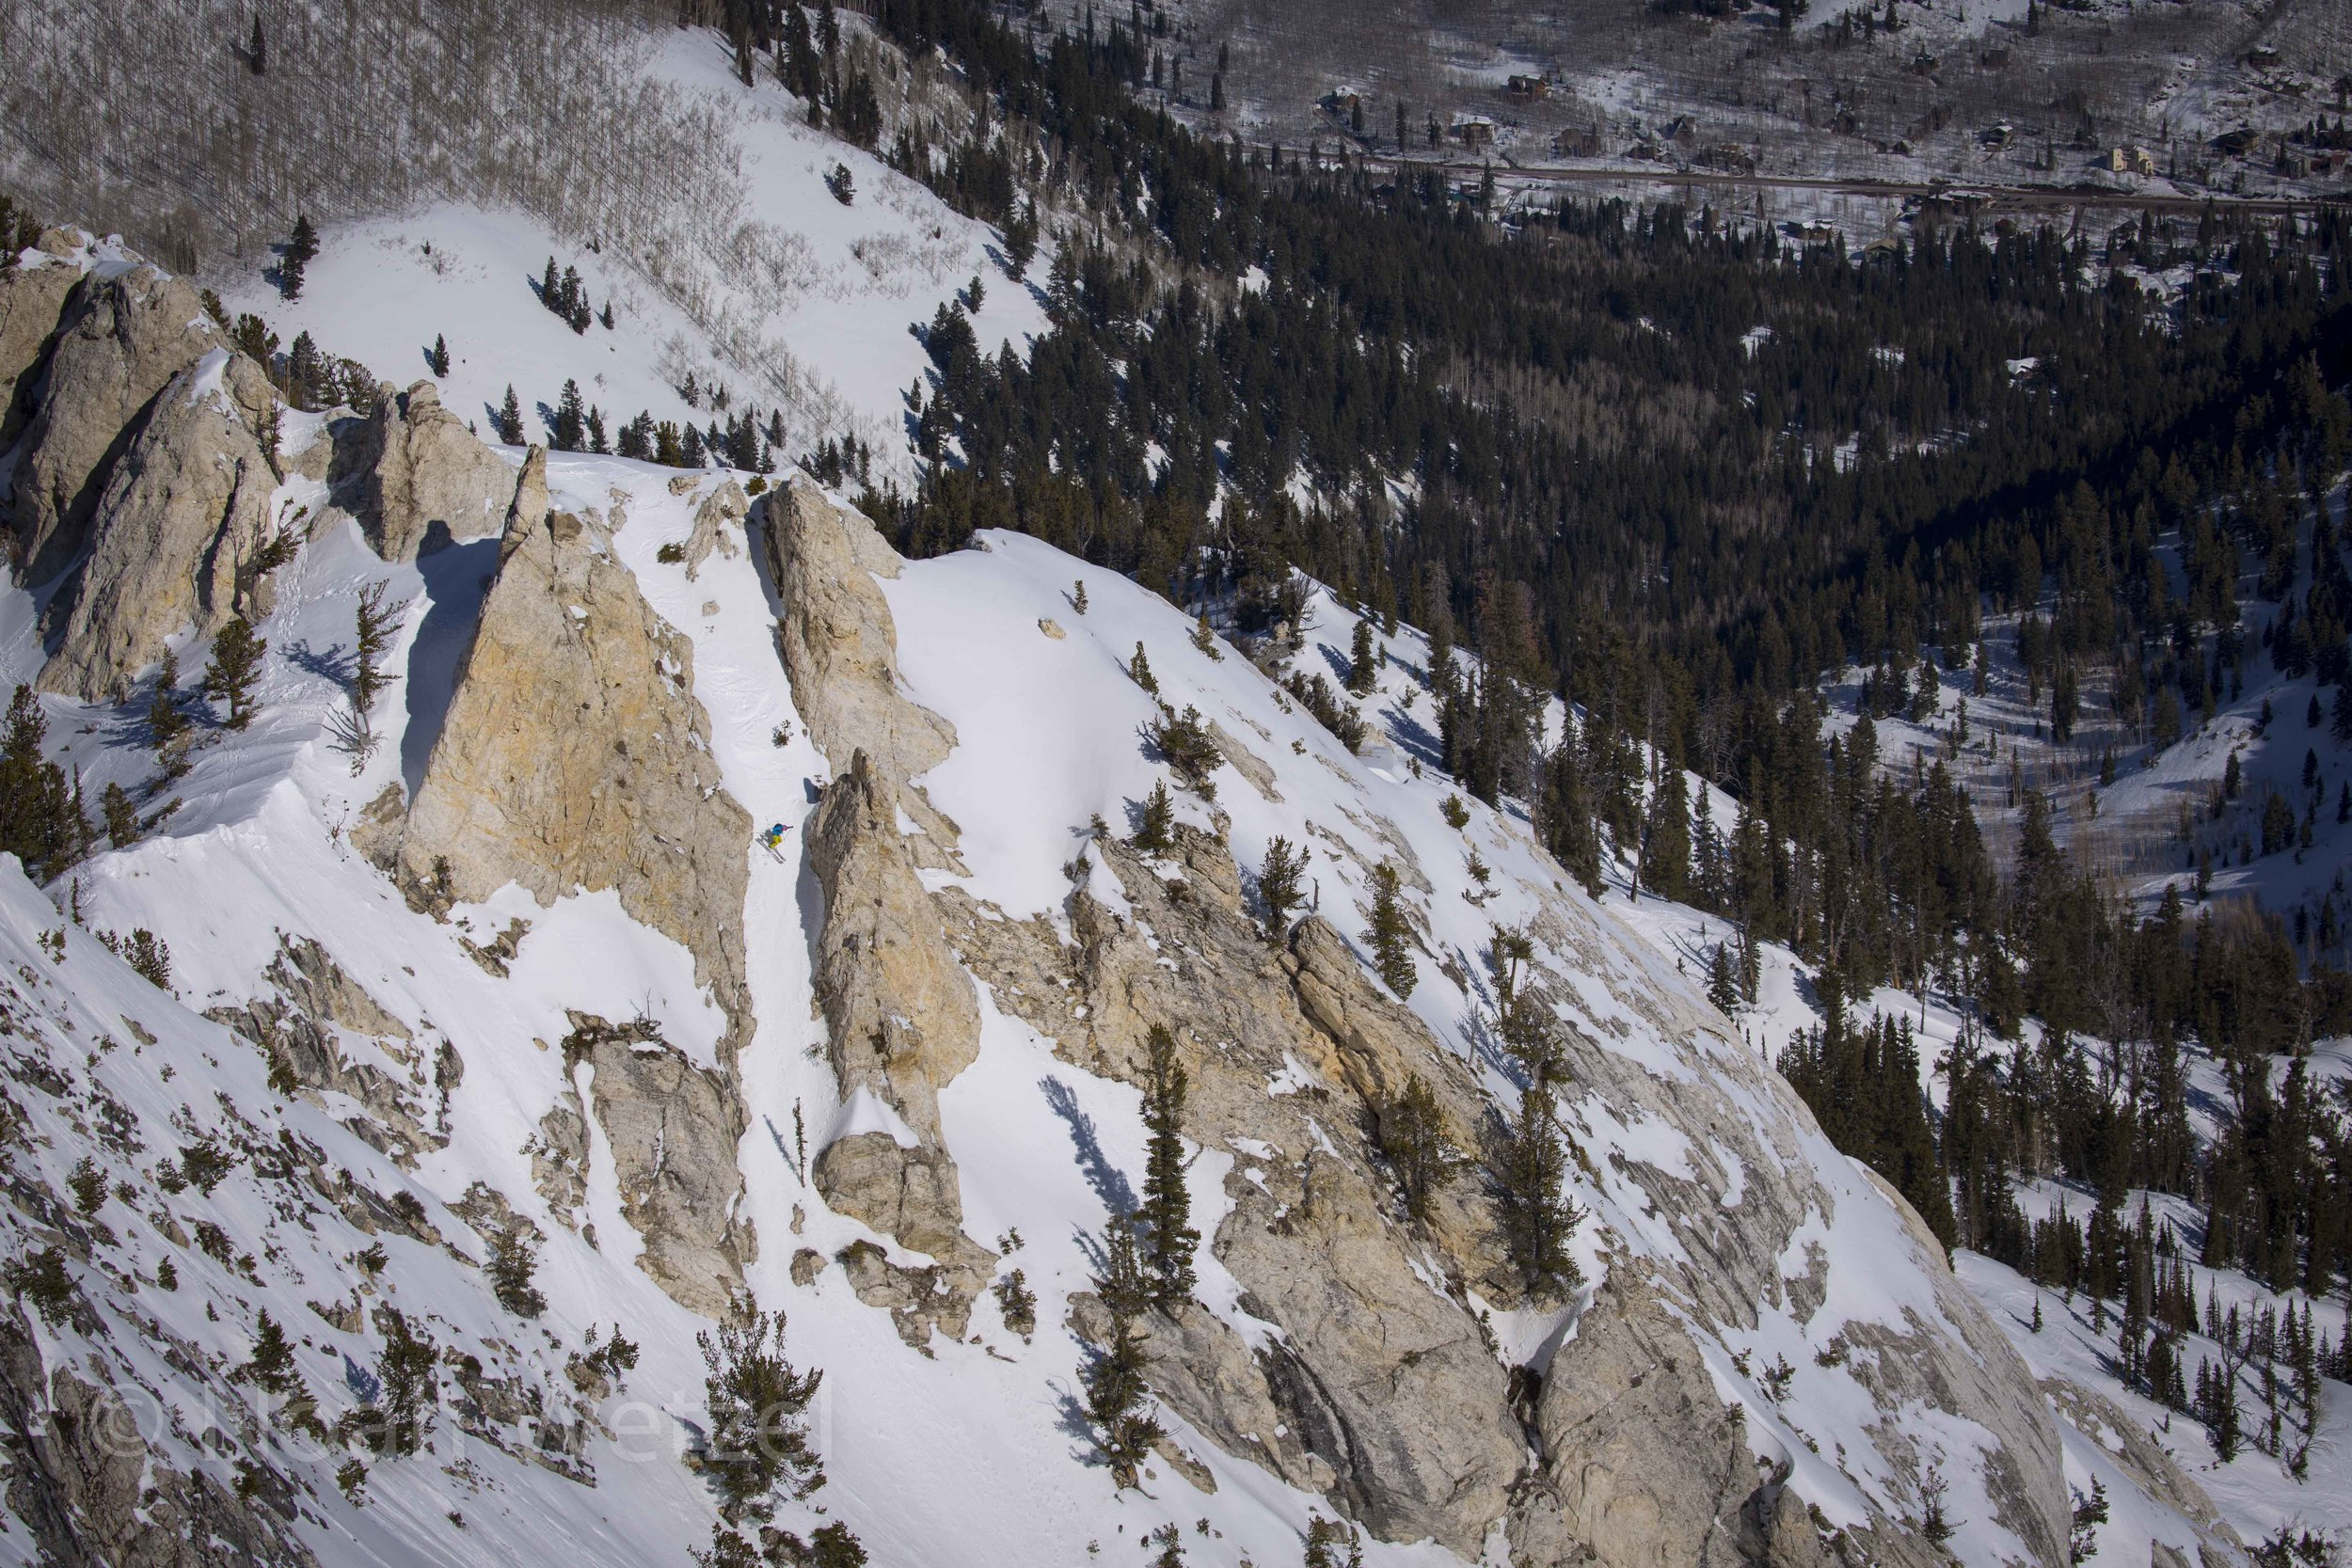 Lucy Sackbauer skiing a tight chute on Fantasy Ridge at Solitude Mountain Resort. Day 3